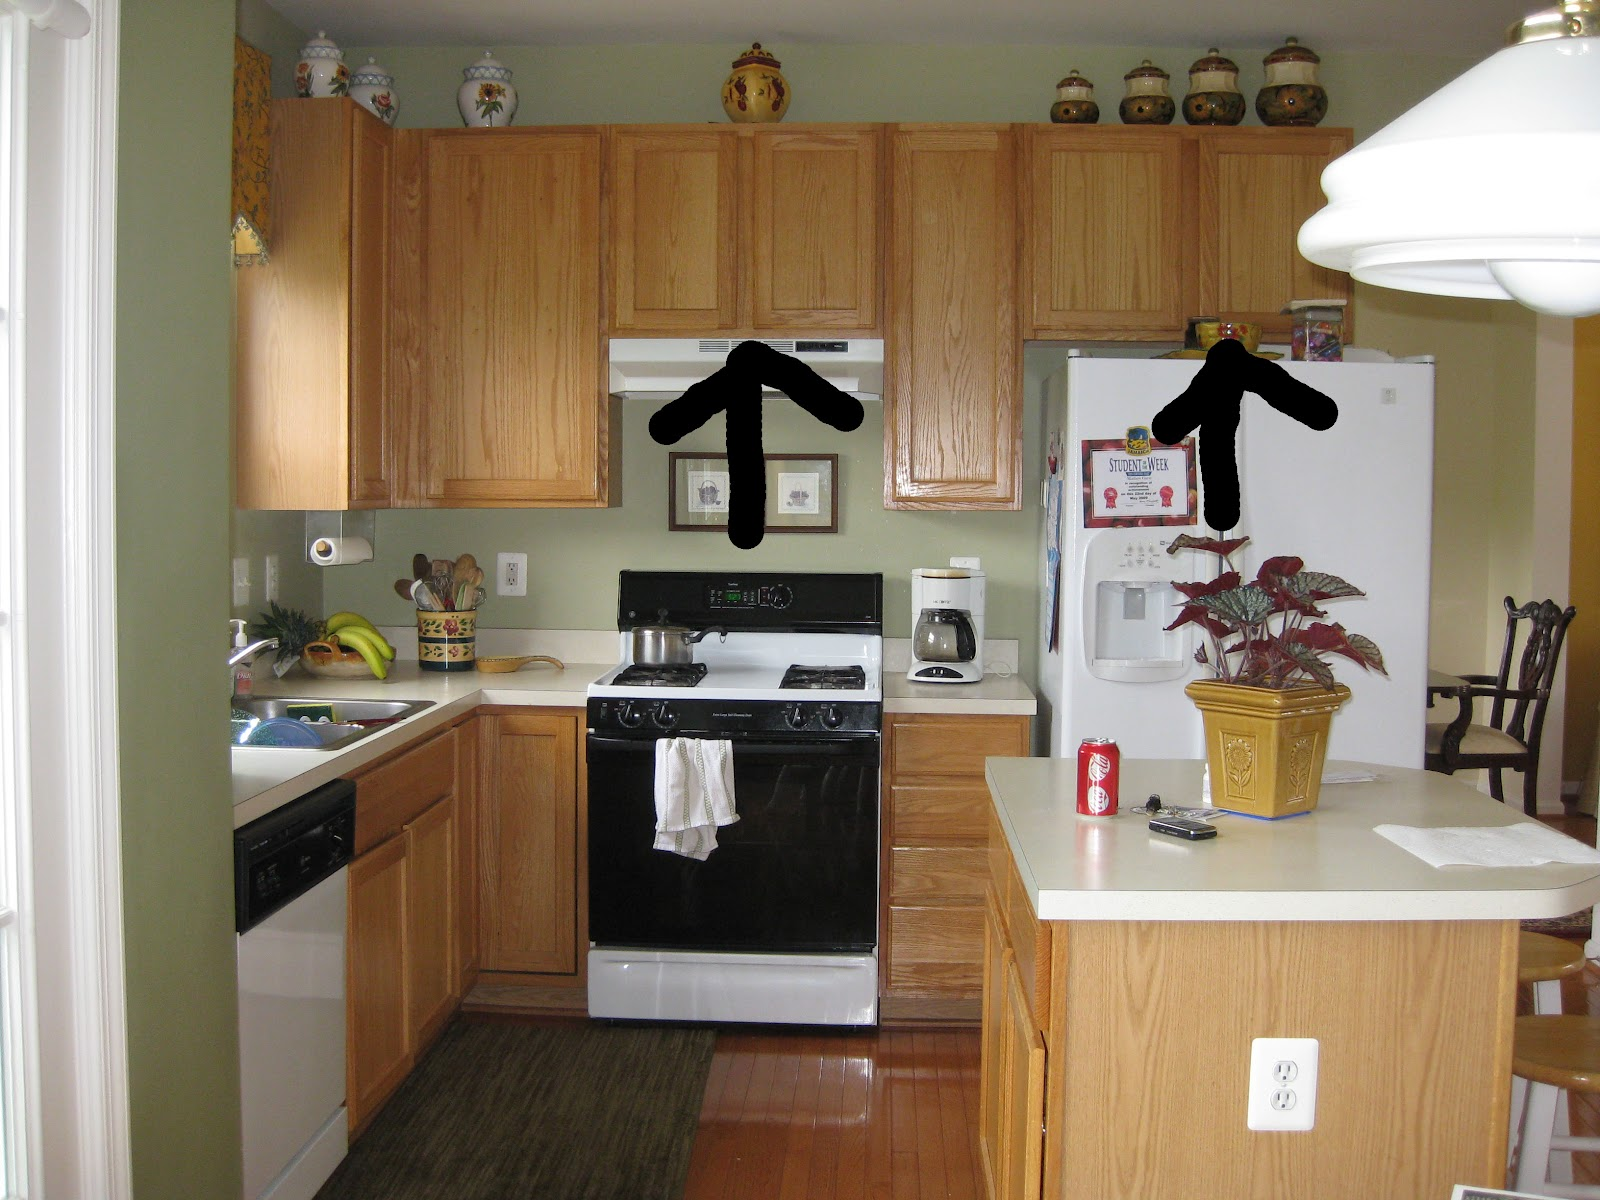 reused kitchen cabinets reuse kitchen cabinets 187 home reused kitchen cabinets for your home reused kitchen